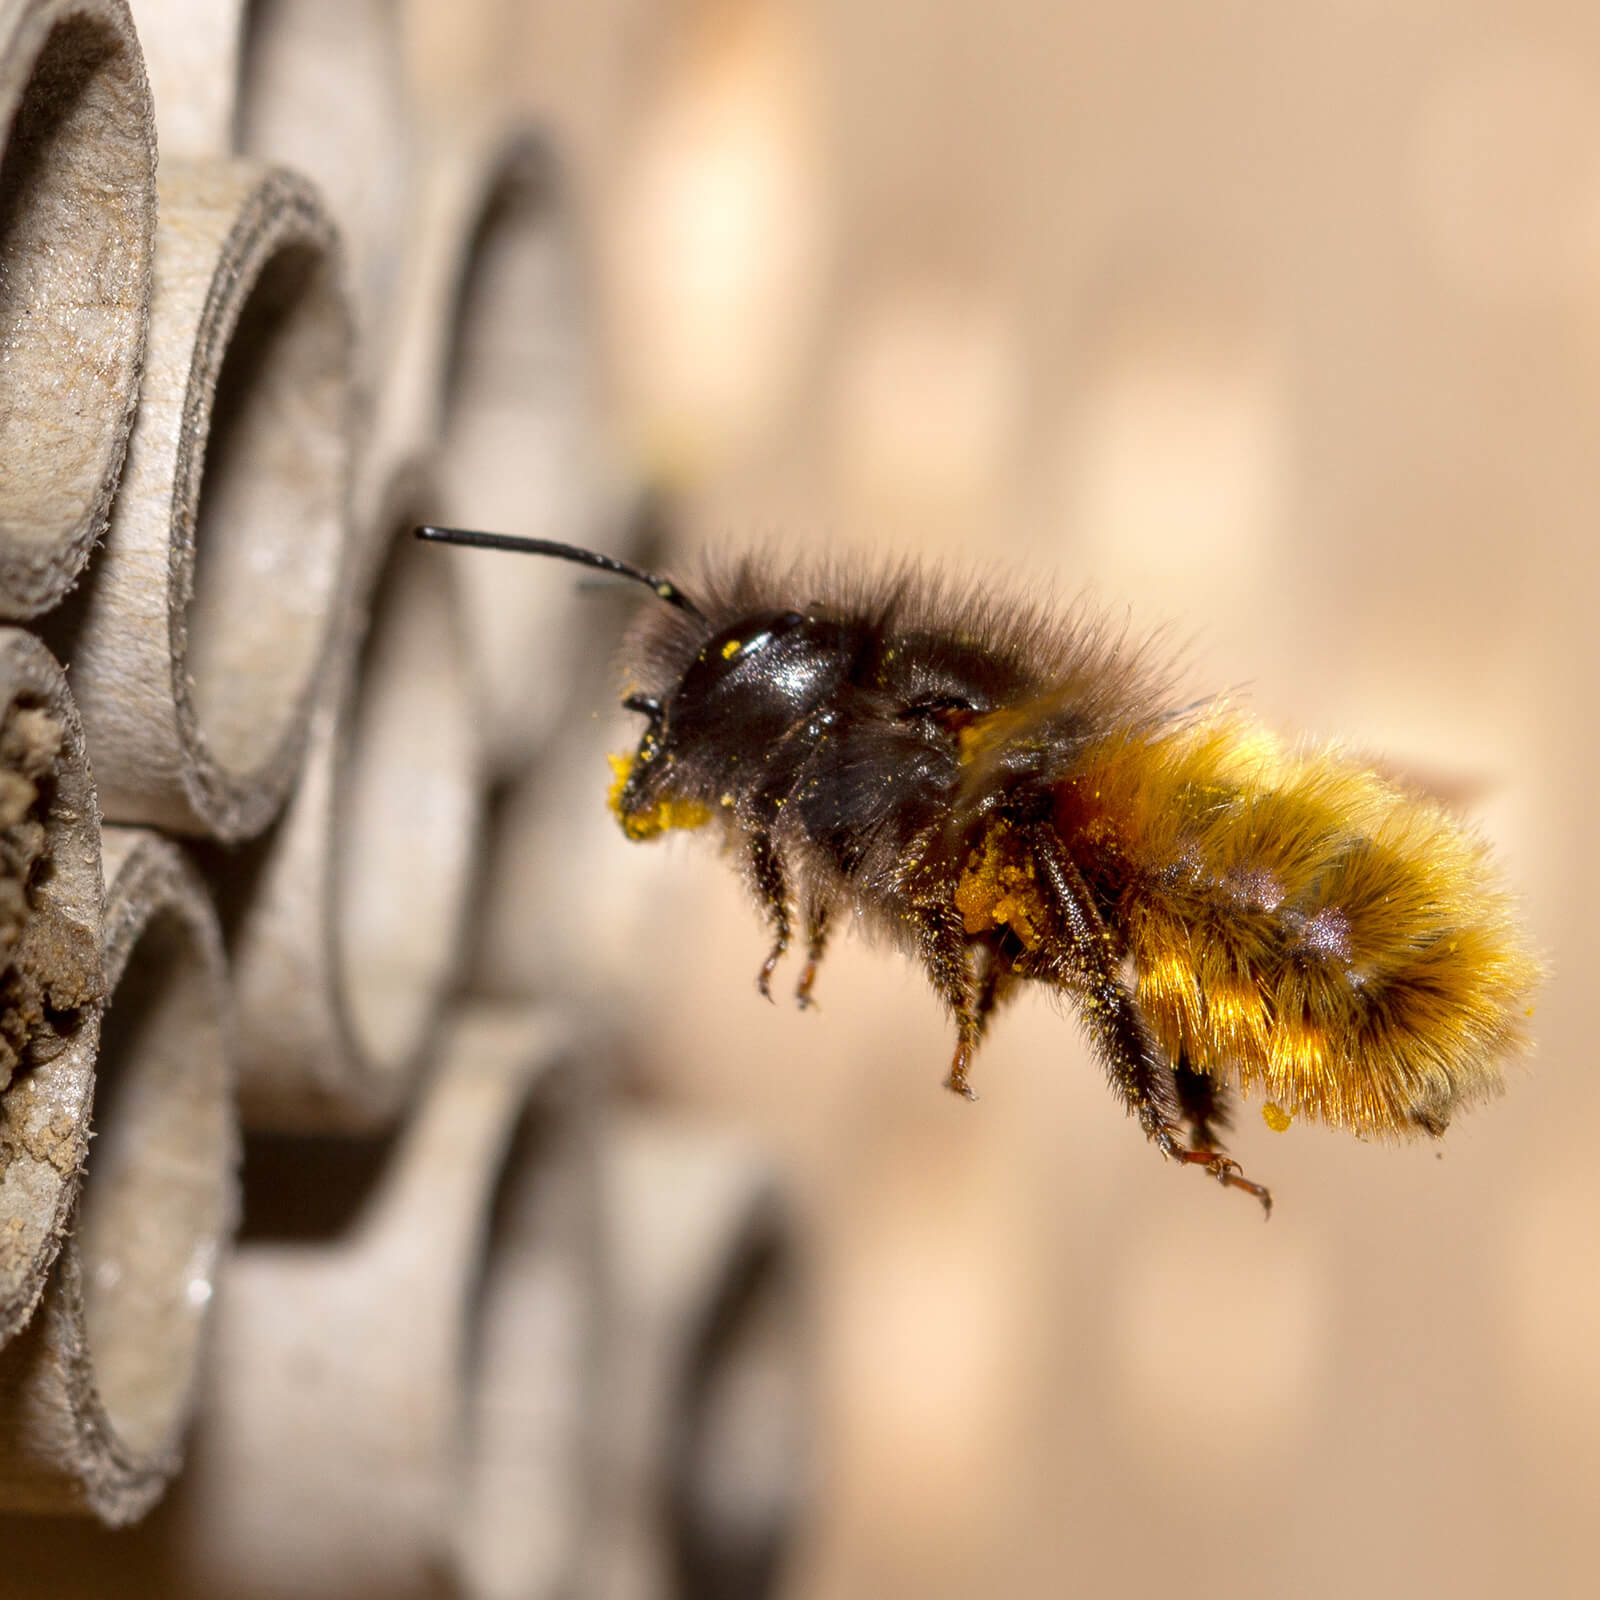 Mason bee about to enter a home